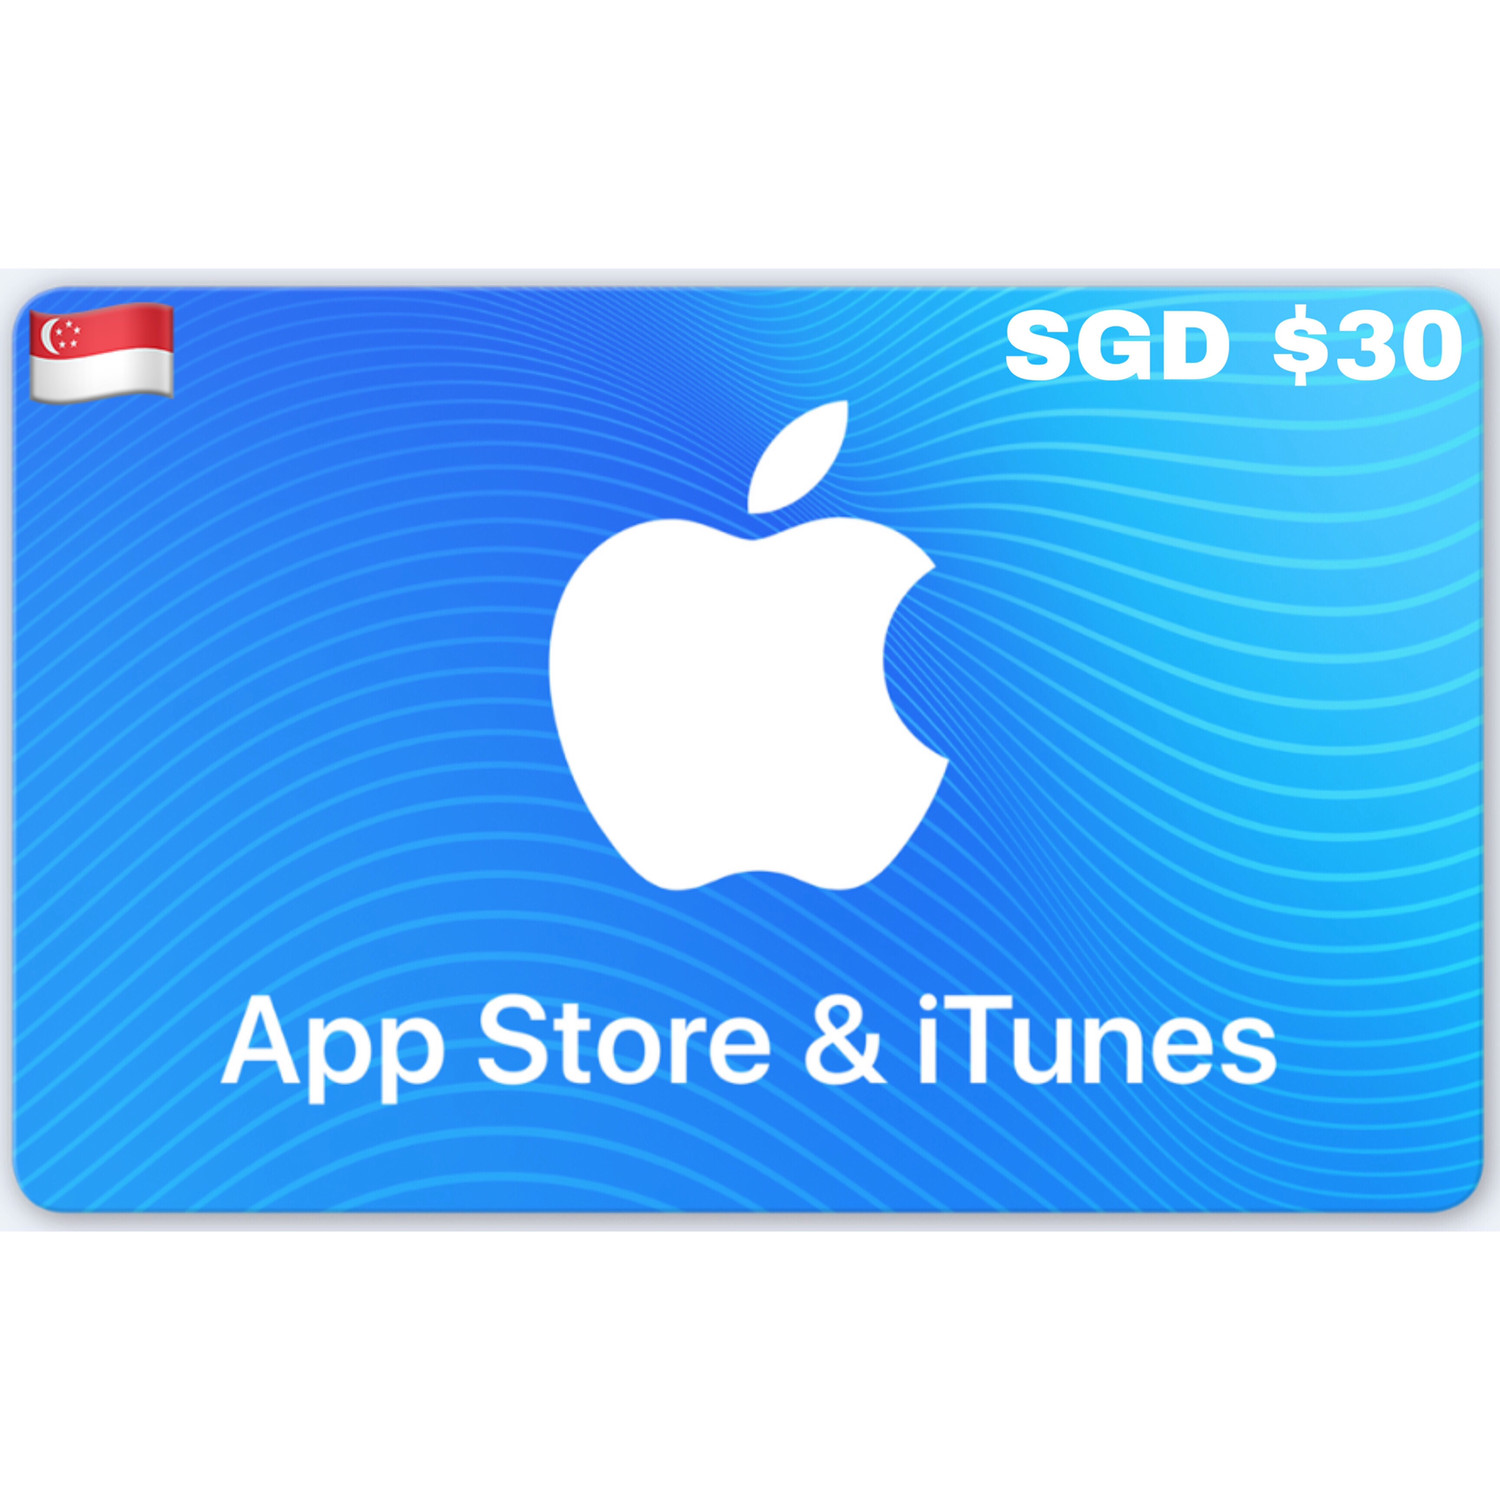 Apple App Store & iTunes Gift Card Singapore SGD $30